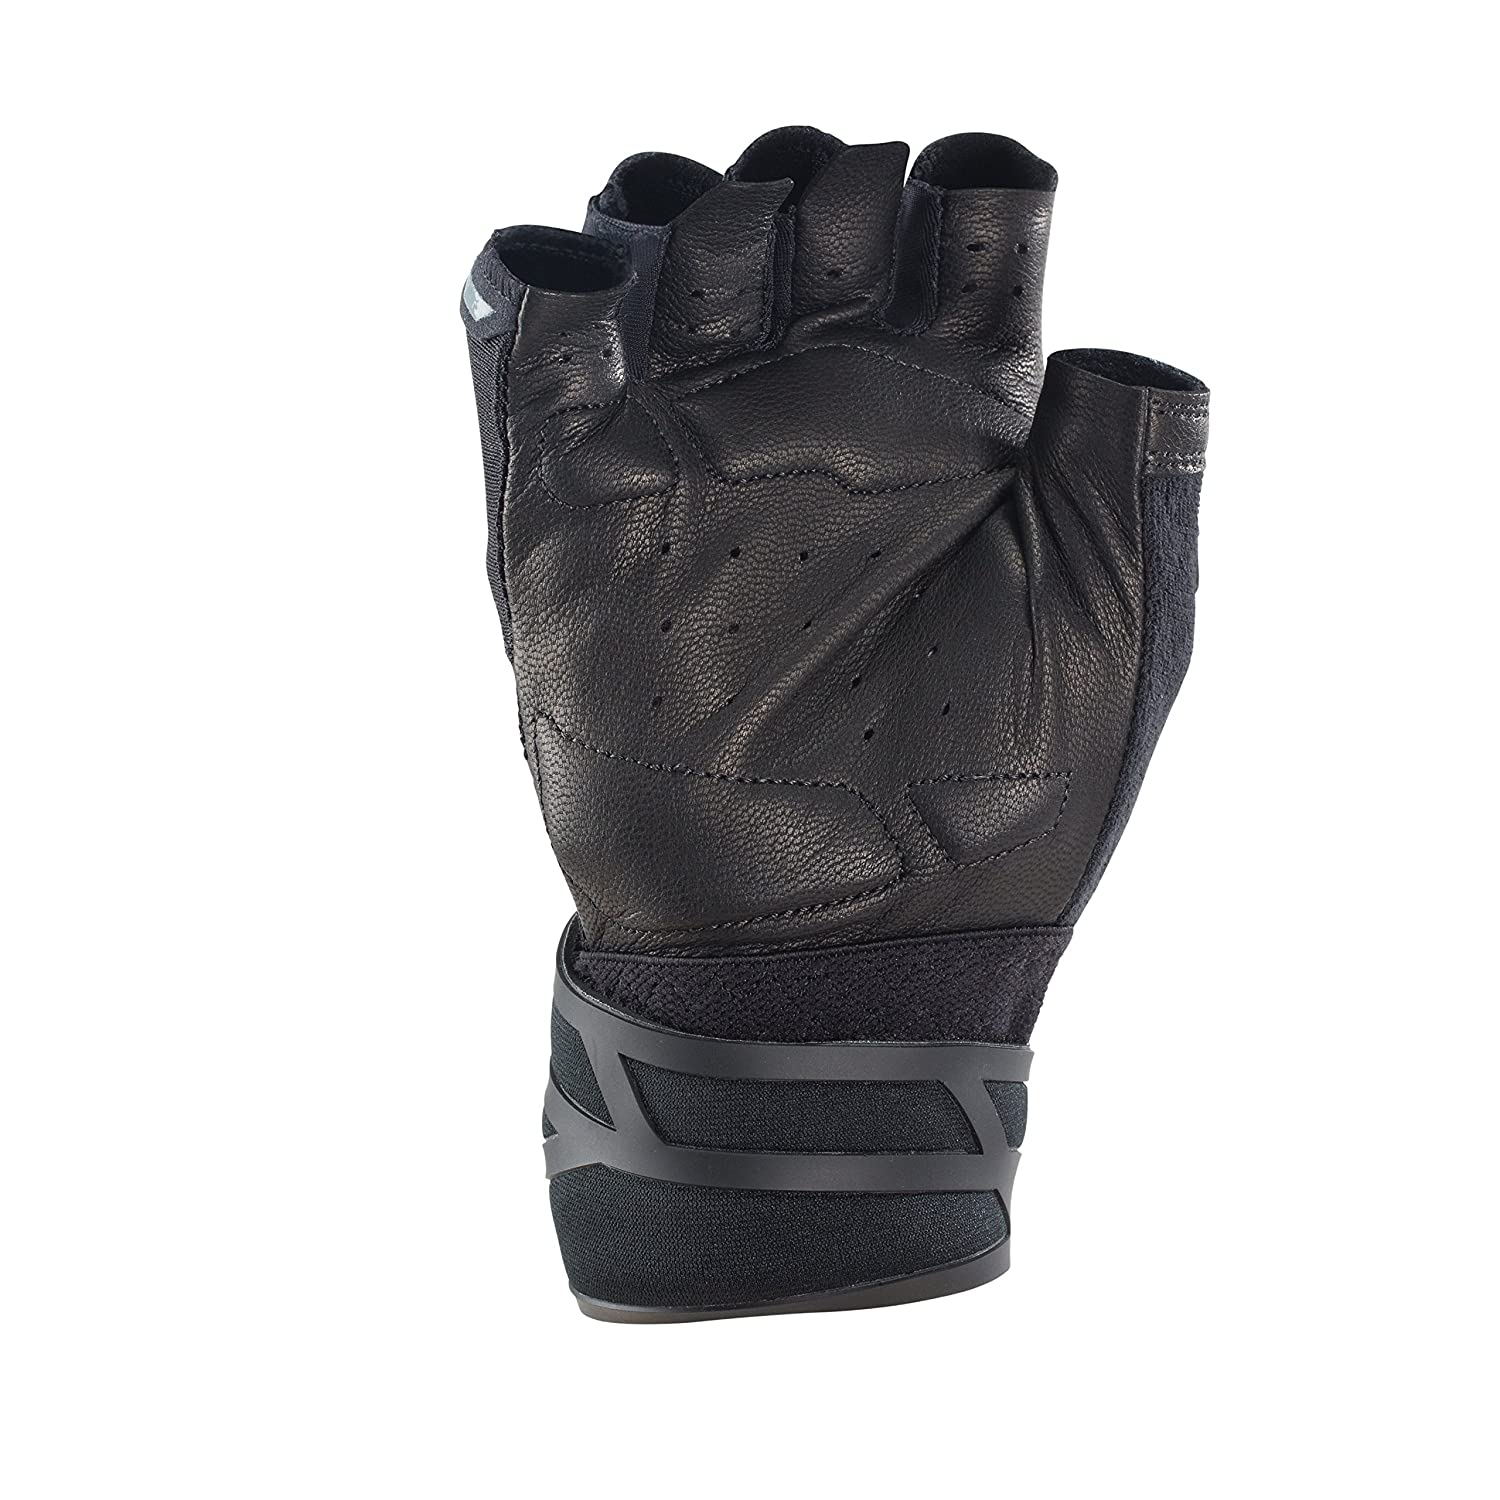 1539f1e45b0 under armour gloves winter cheap   OFF35% The Largest Catalog Discounts